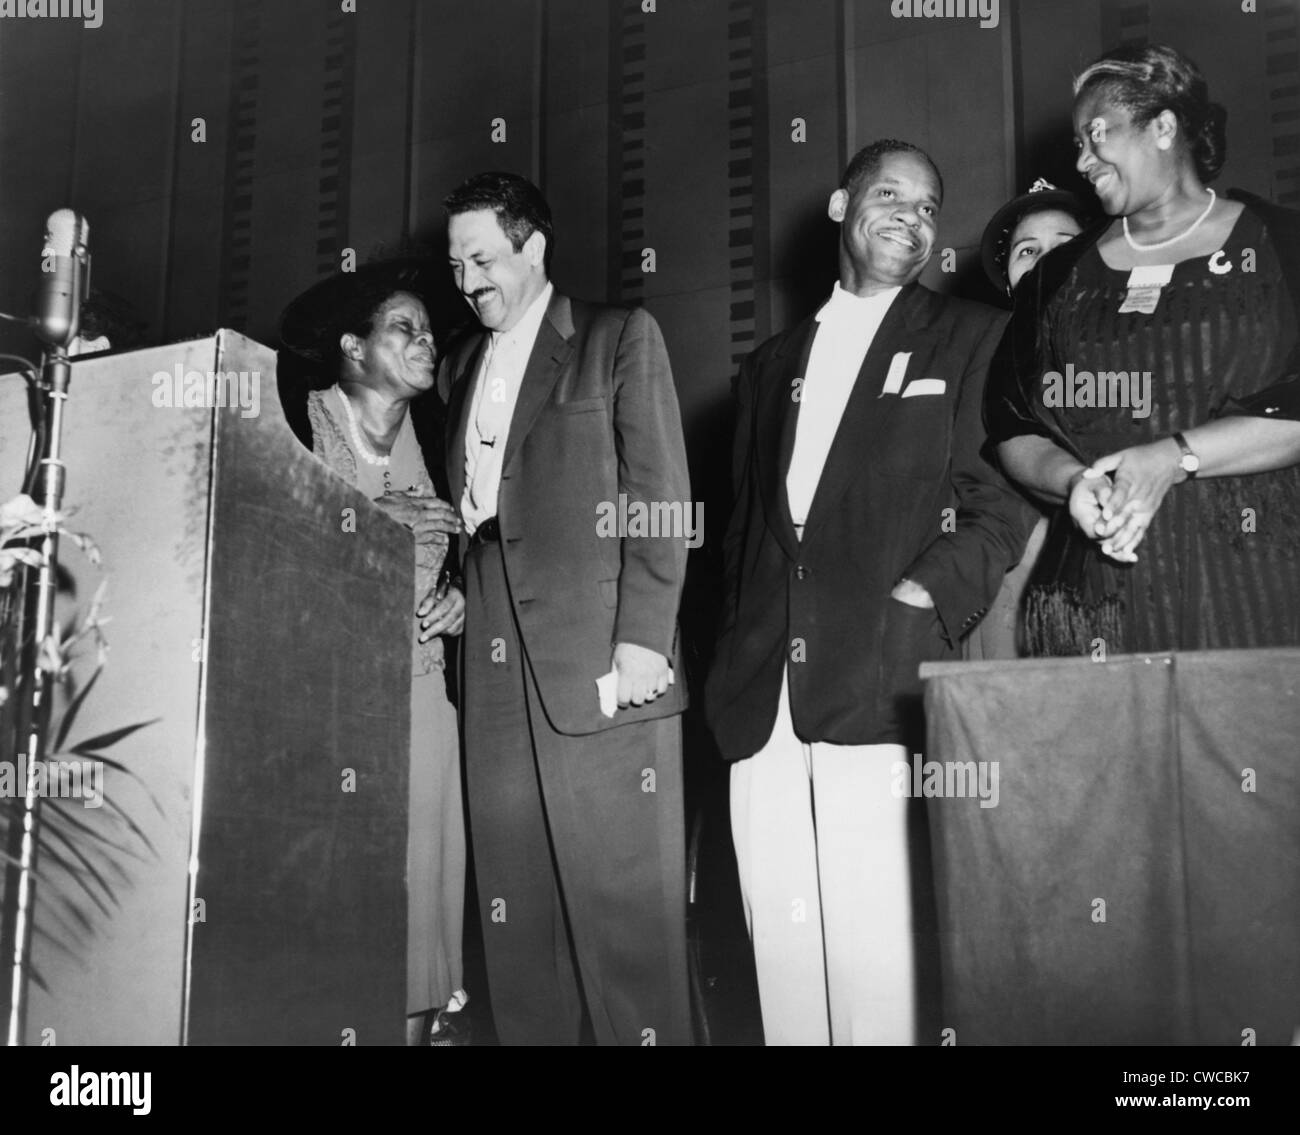 Thurgood Marshall standing with educator Nannie Helen Burroughs on left. Ca. 1950. - Stock Image